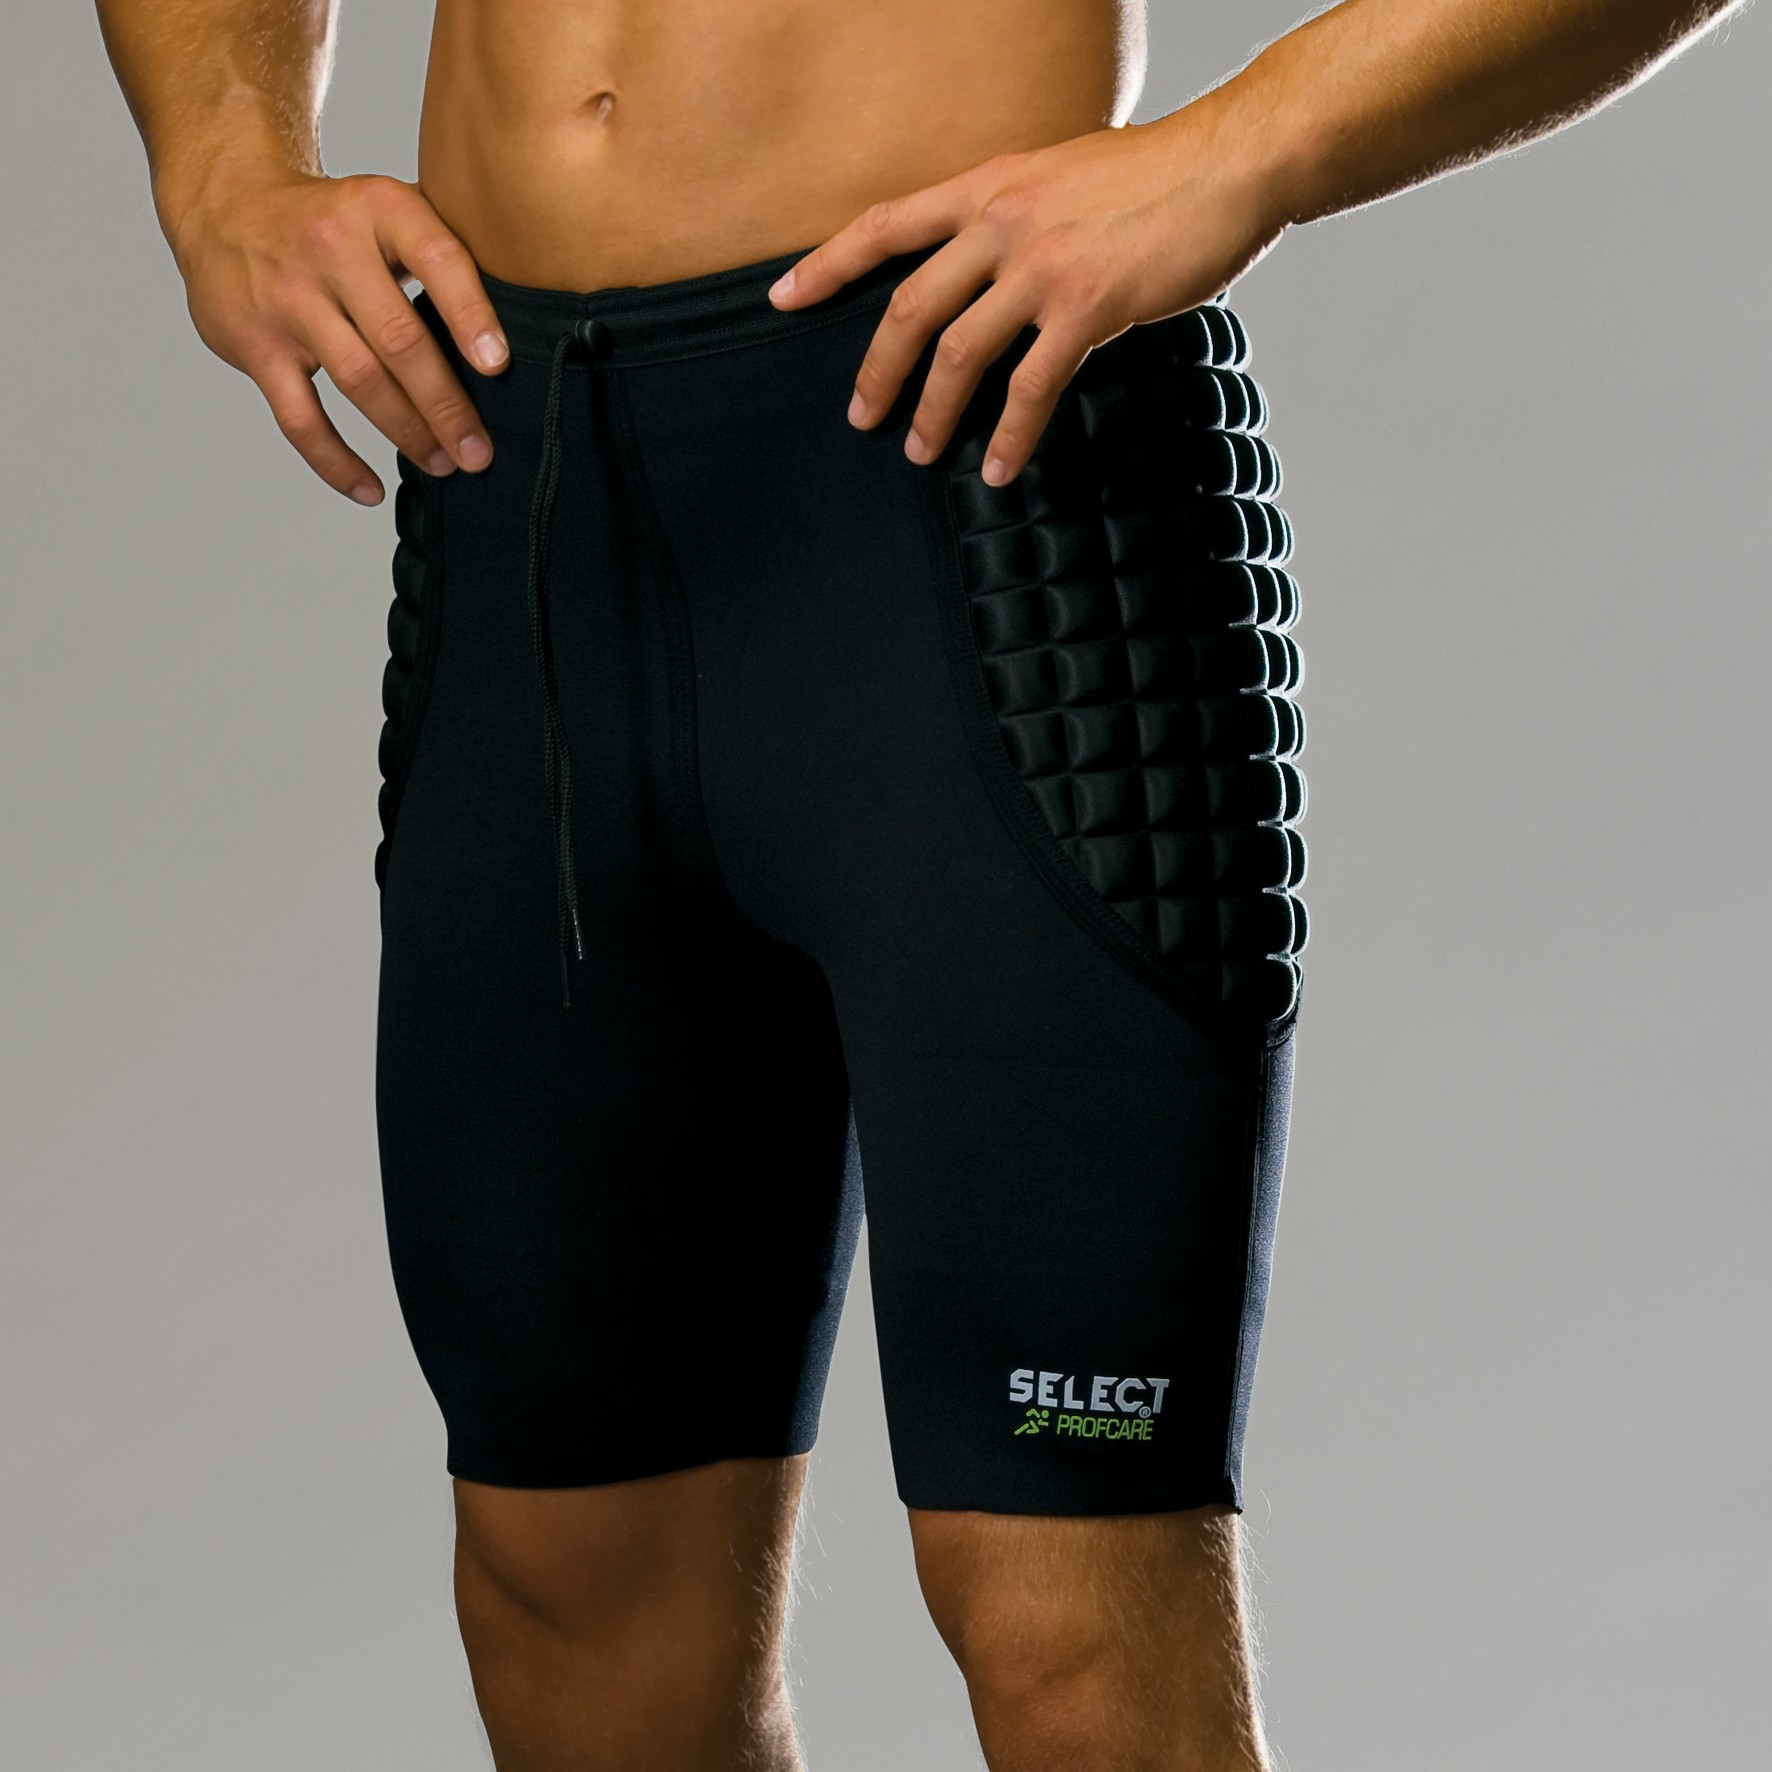 Výprodej - Goalkeeper pants 6420 - Select